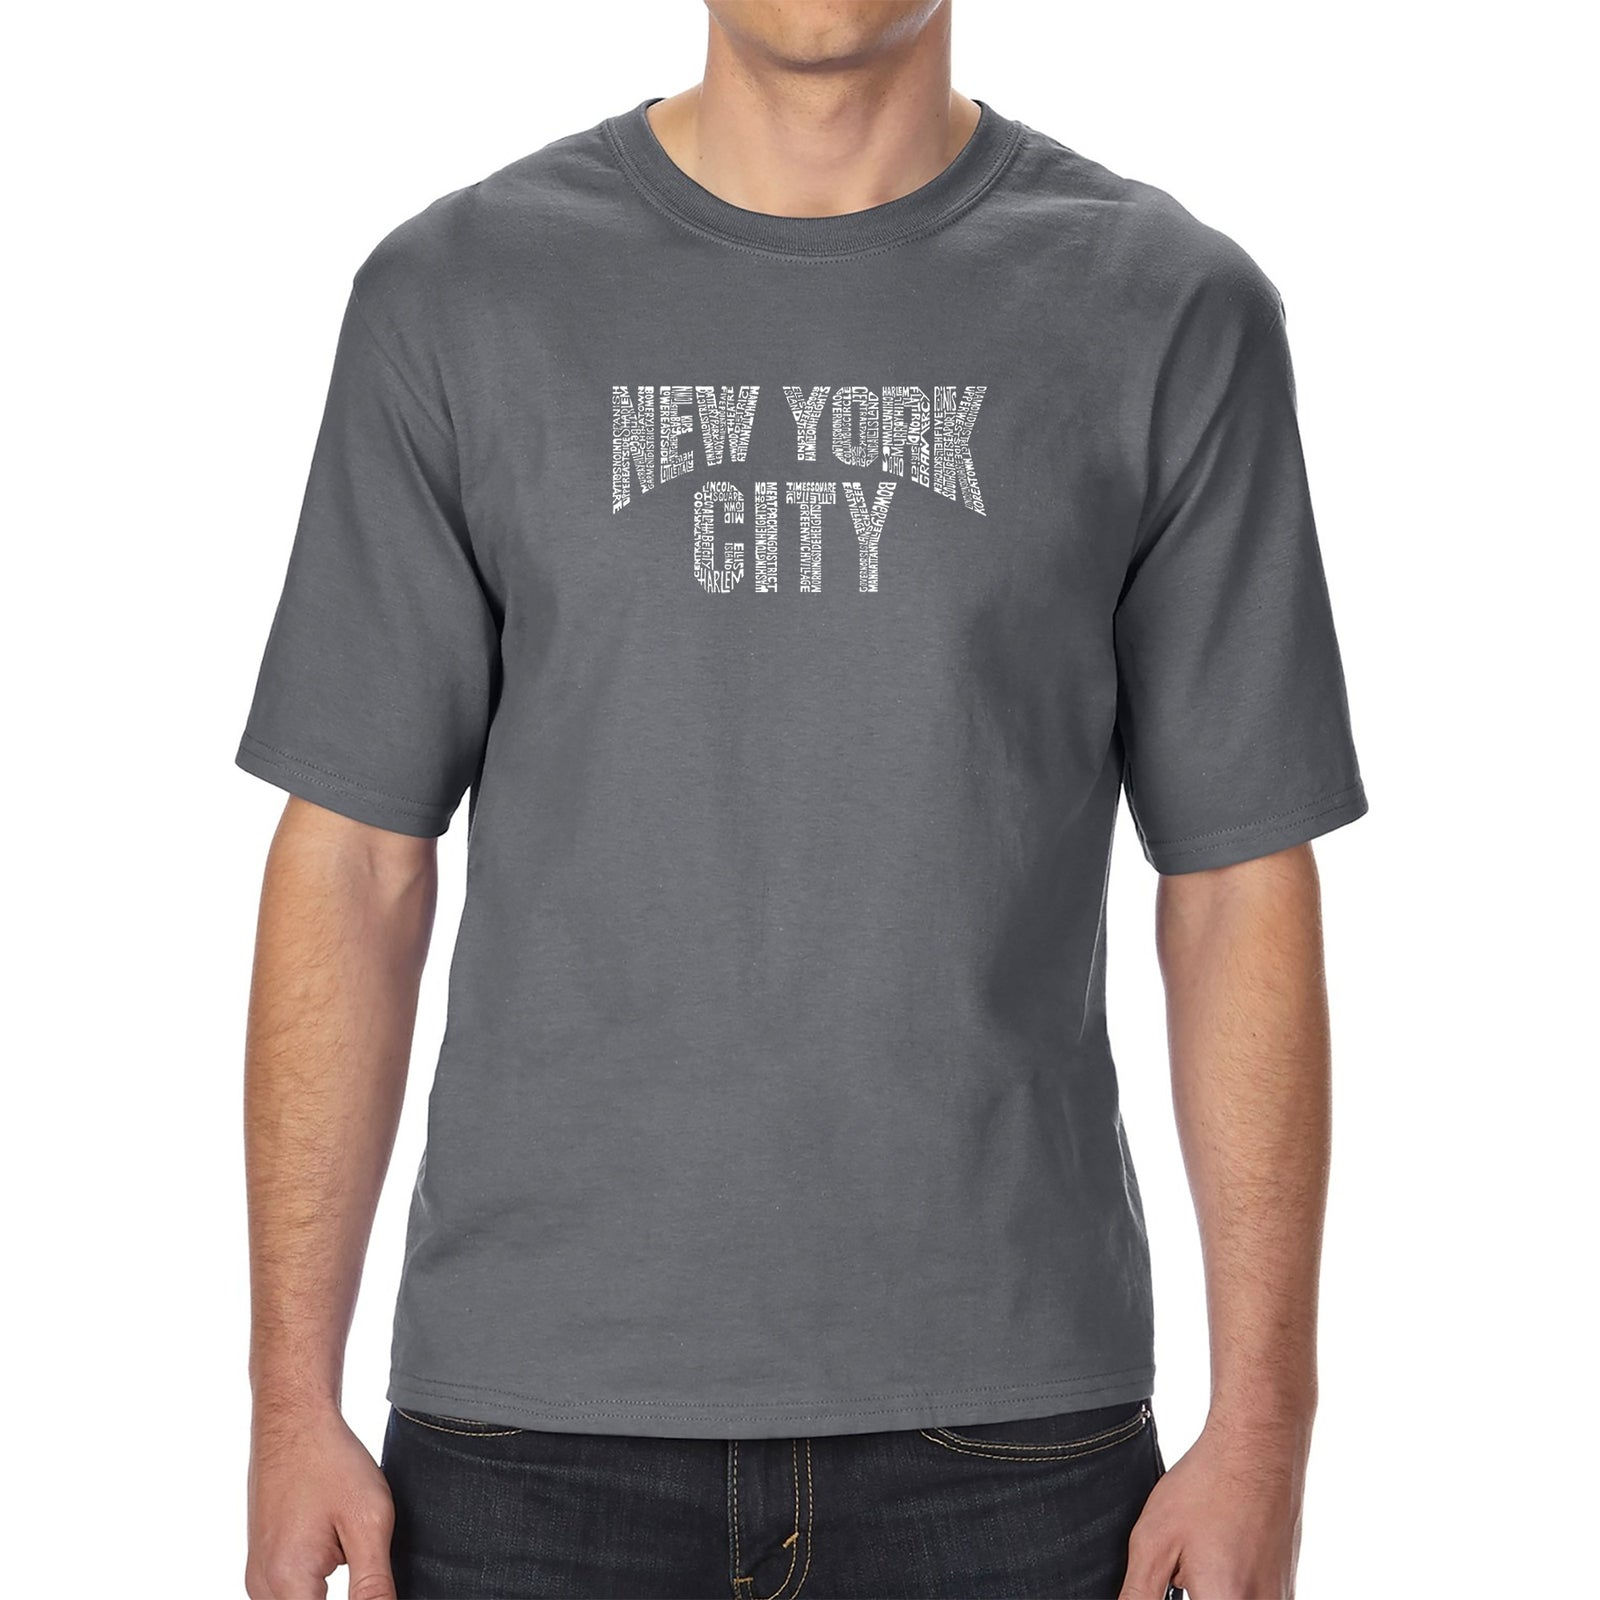 Men's Tall and Long Word Art T-shirt - NYC NEIGHBORHOODS